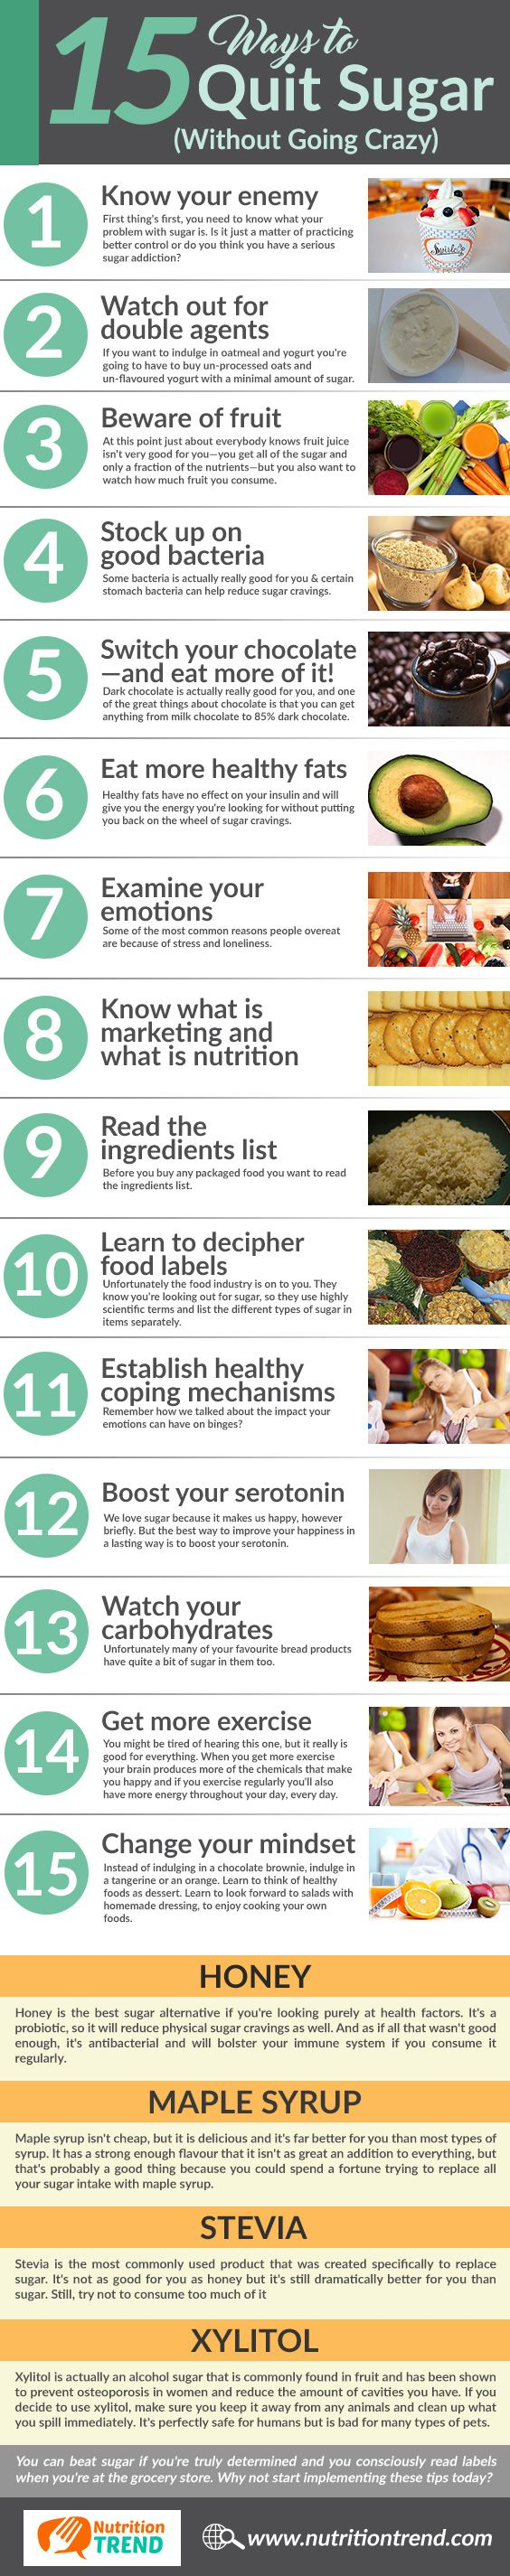 15 easy ways to cut down on sugar and try these 4 delicious alternatives instead! - www.nutritiontrend.com/15-ways-to-quit-sugar-4-alternatives-to-sugar